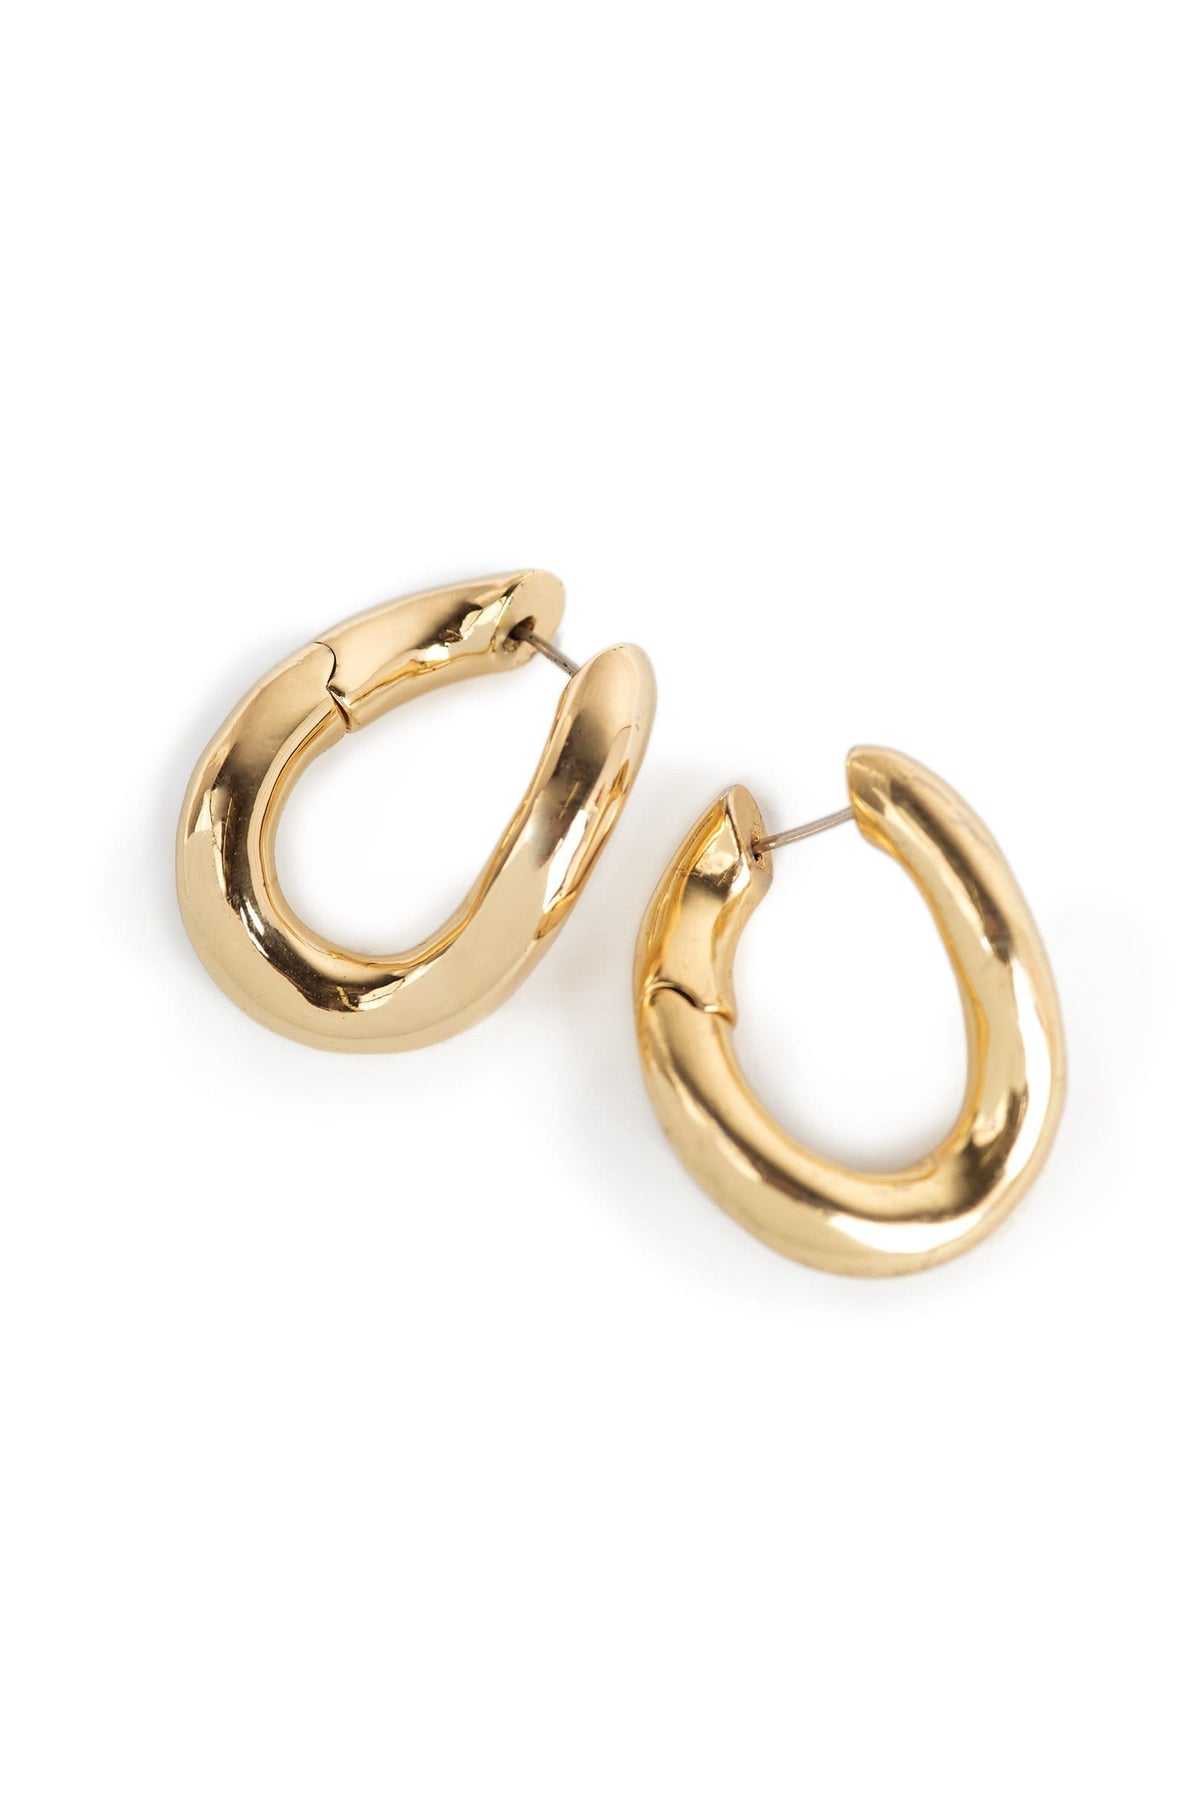 Twisted Hoop earring in gold | J.ING women's clothing